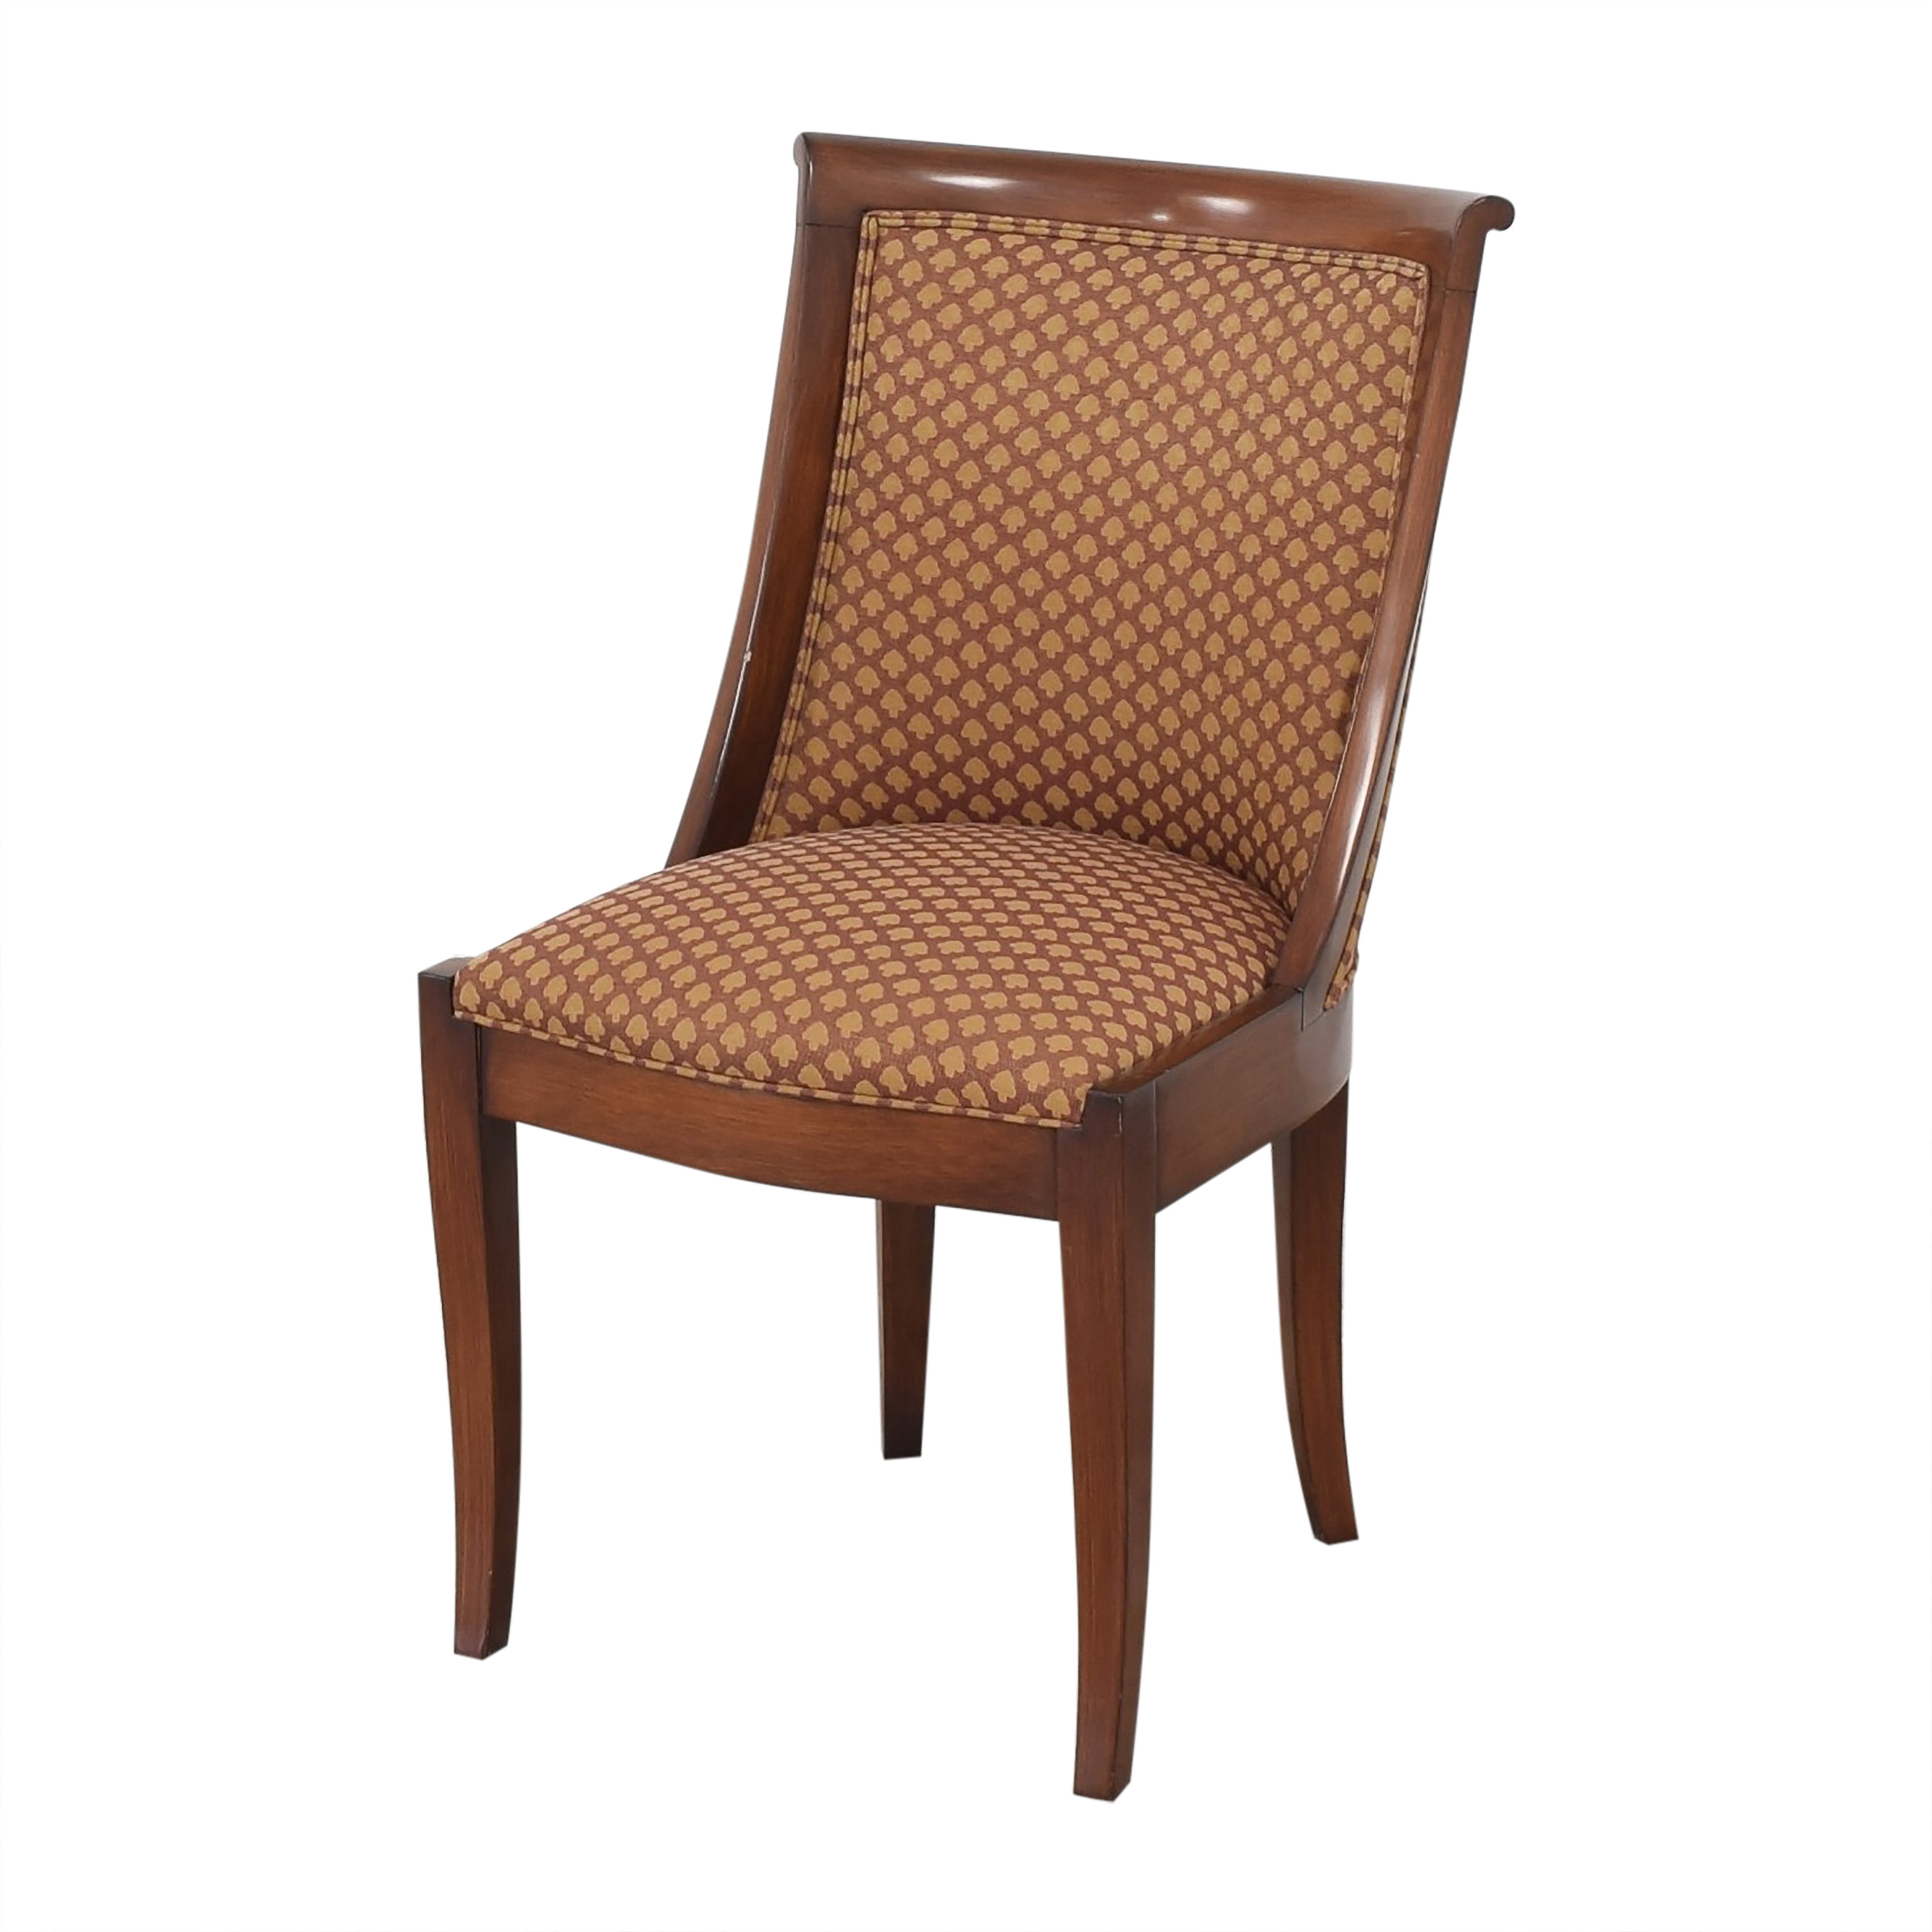 Artistic Frame Artistic Frame Dining Side Chairs coupon